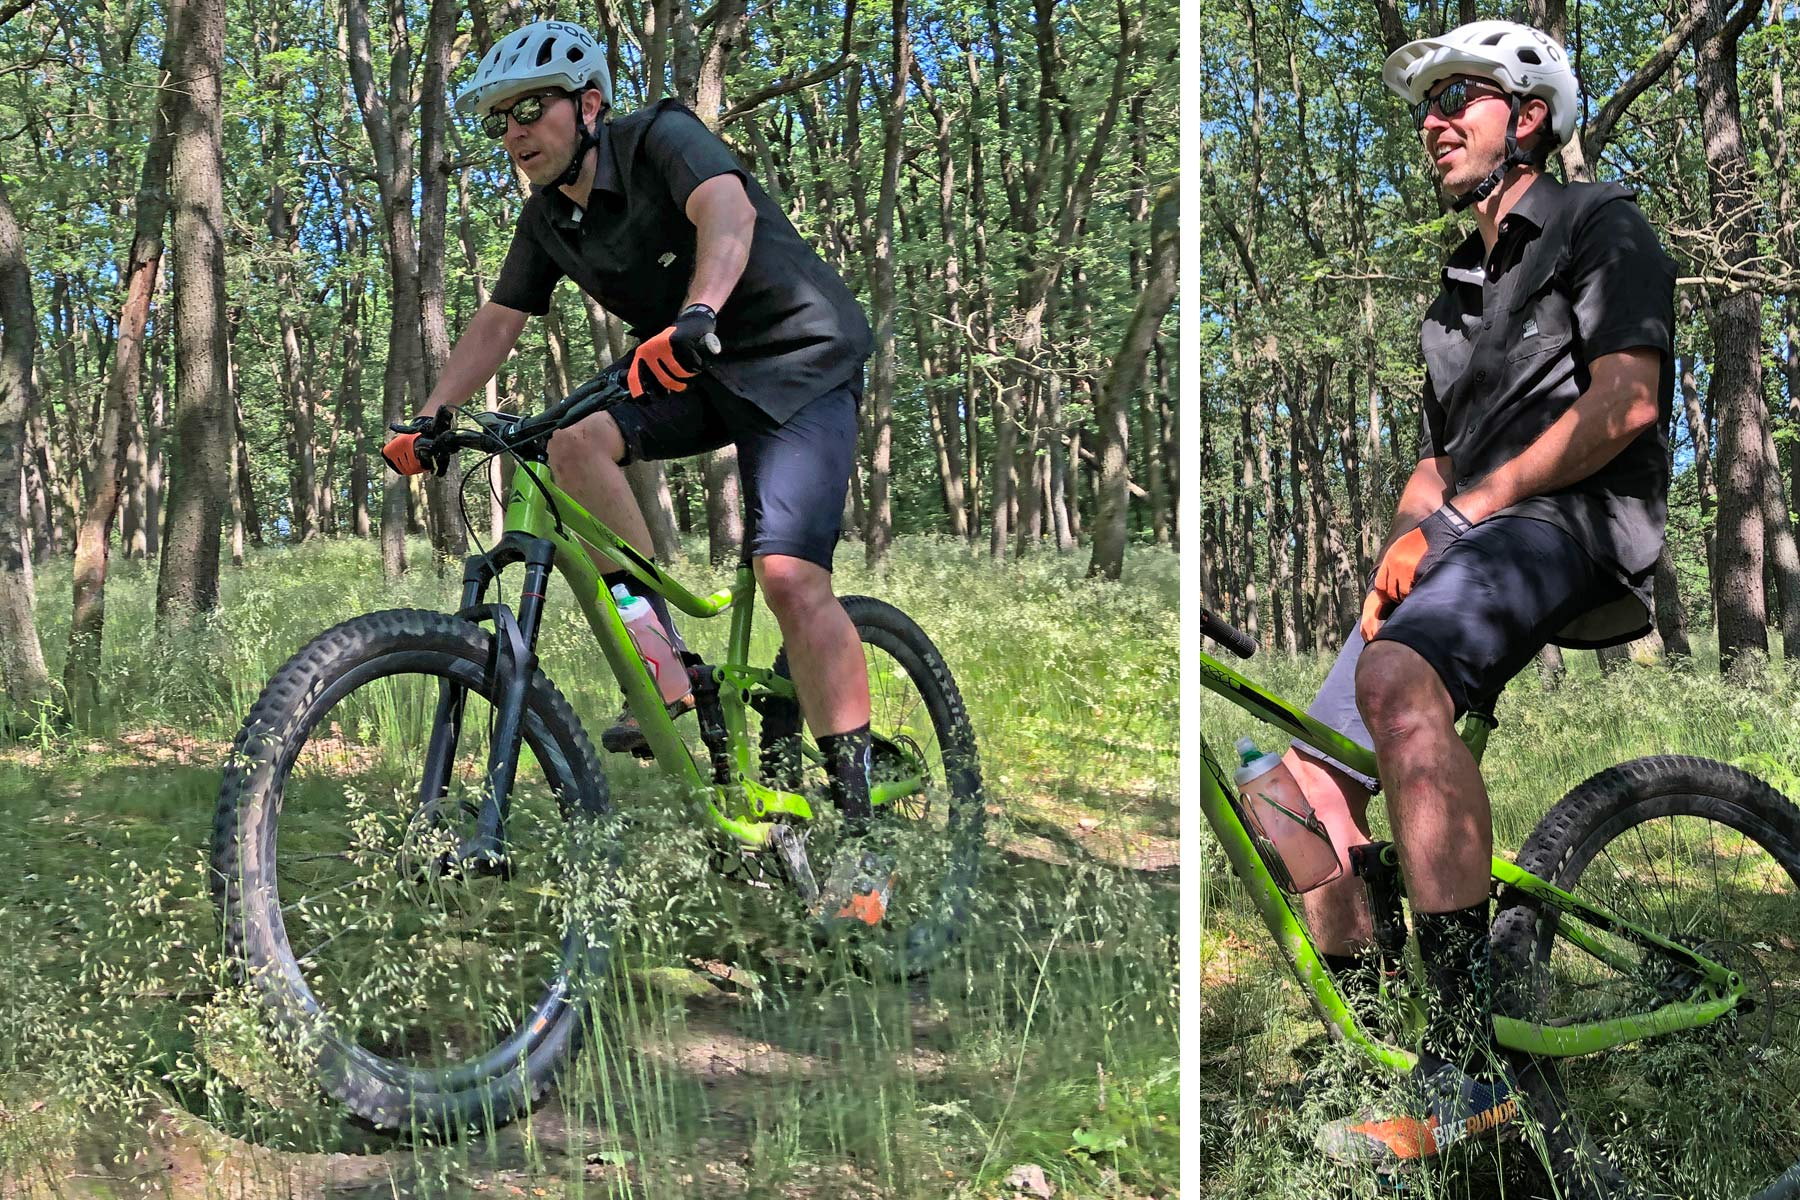 The Overland technical casual riding kit outdoor gear, beyond road gravel adventure mountain bike clothing